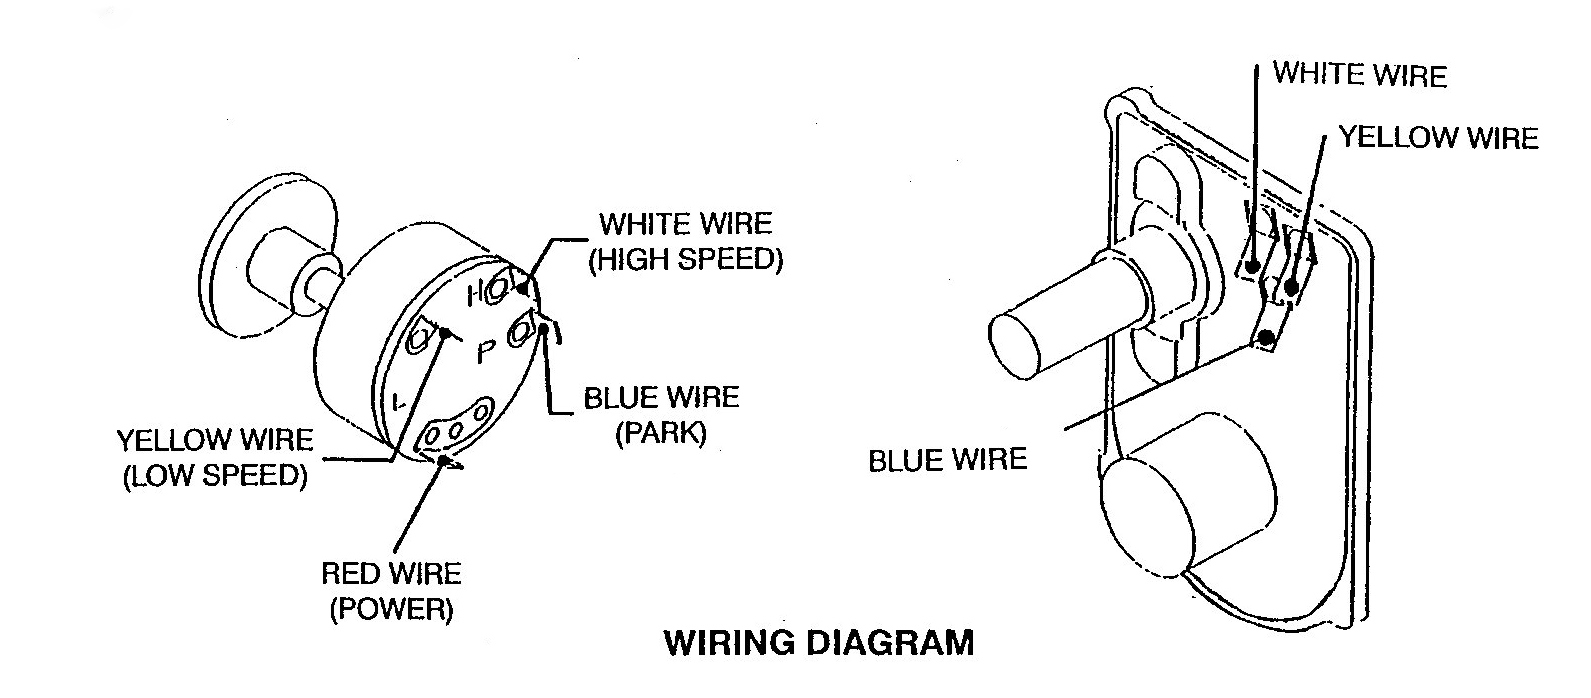 1965 Chrysler Newport Electrical Diagram ~ Wiring Diagram